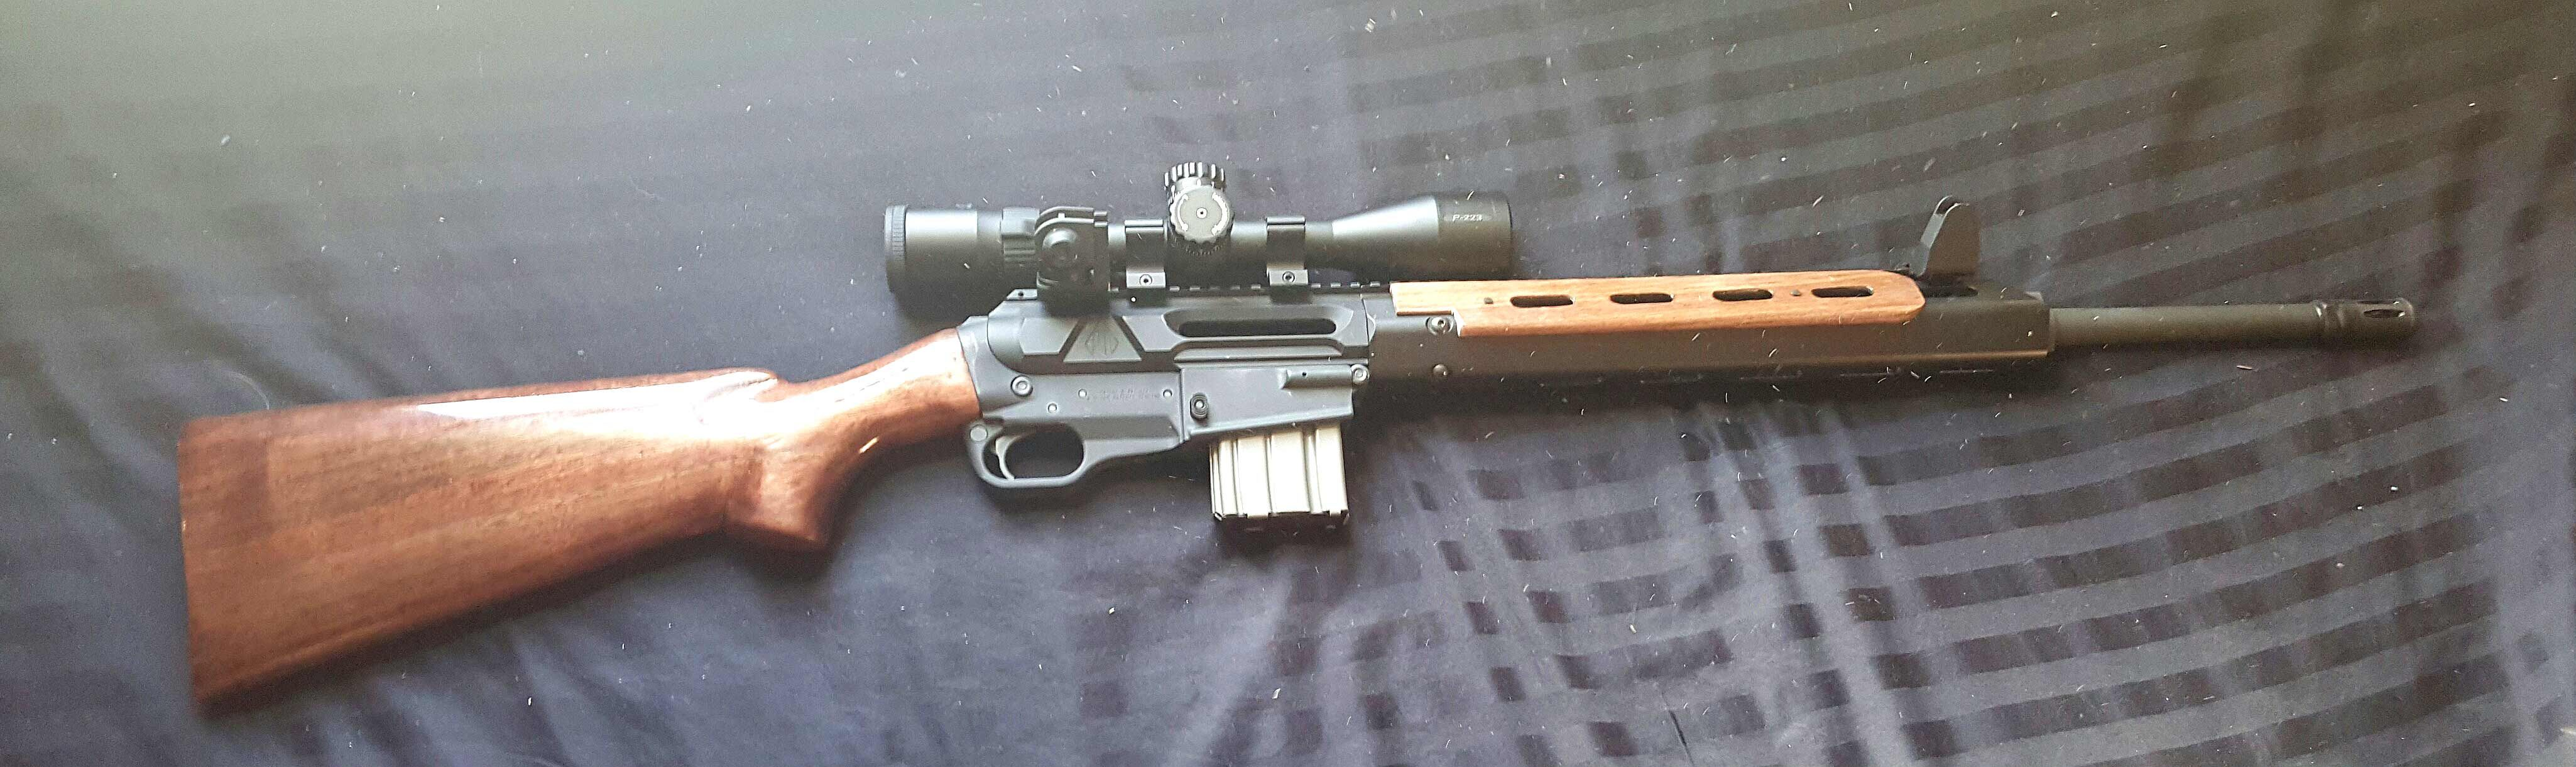 Fitting A Wooden Stock Onto My Ares Scr Rifle